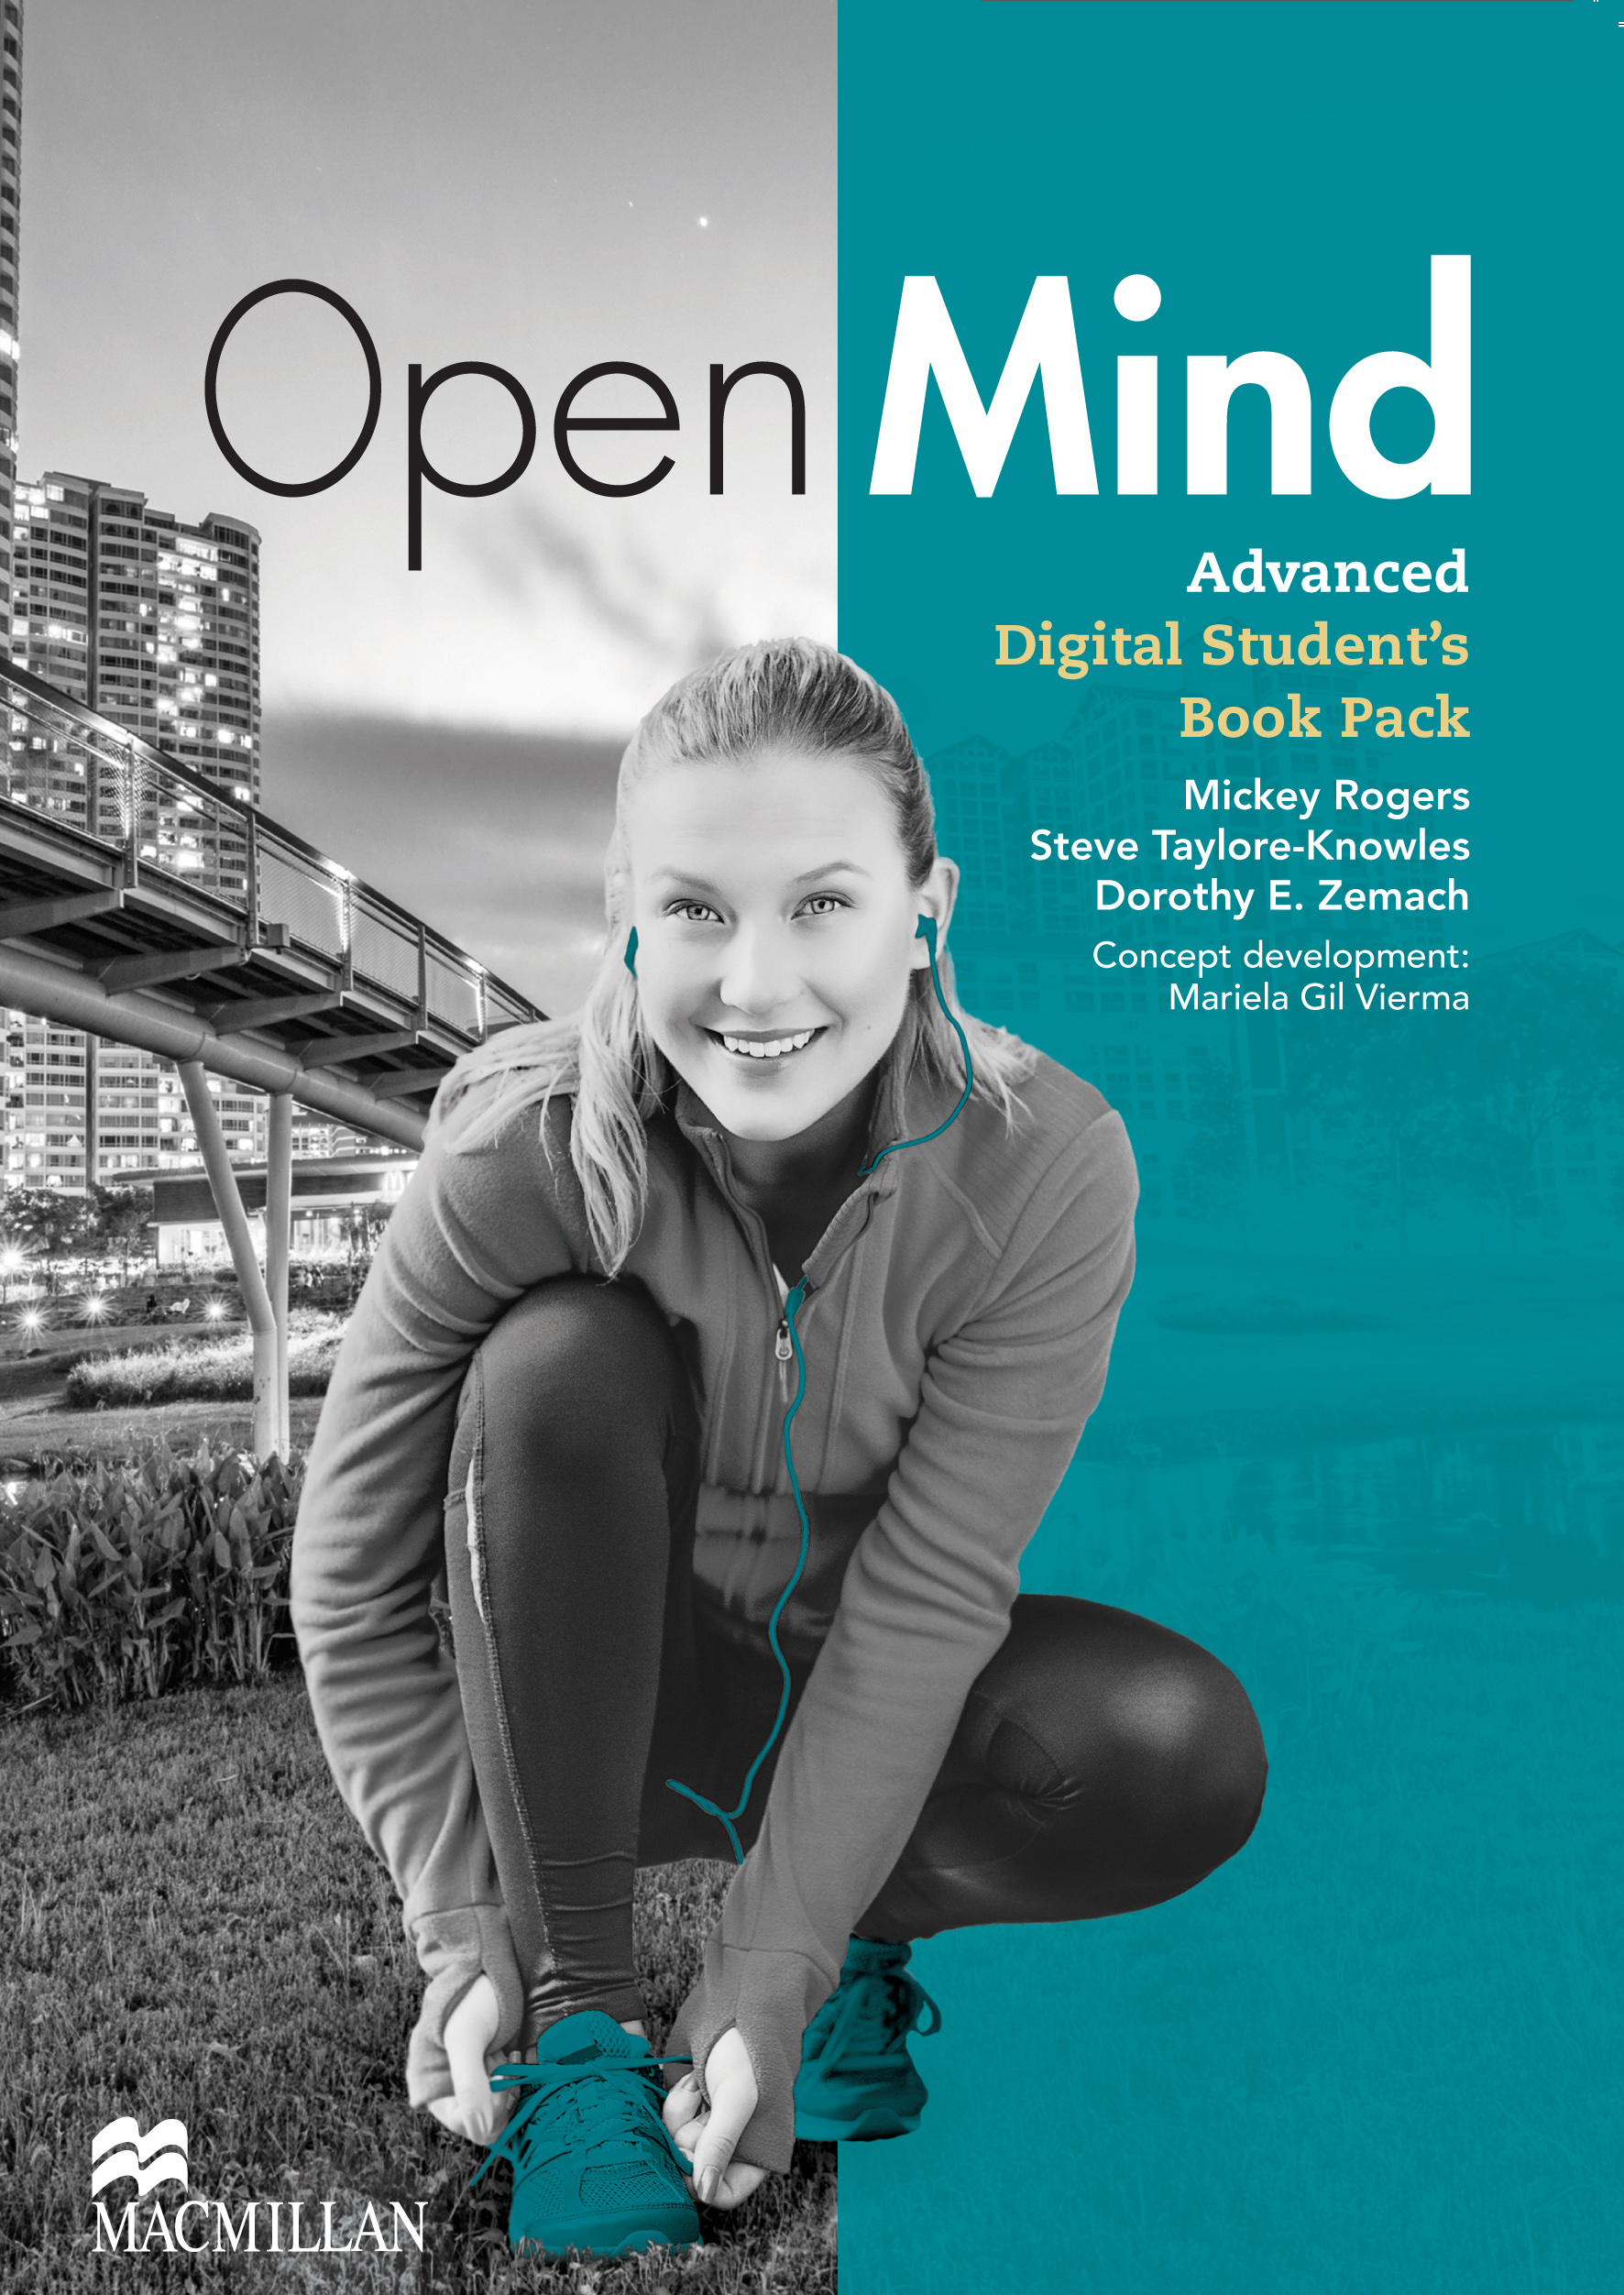 Open Mind Advanced Digital Student